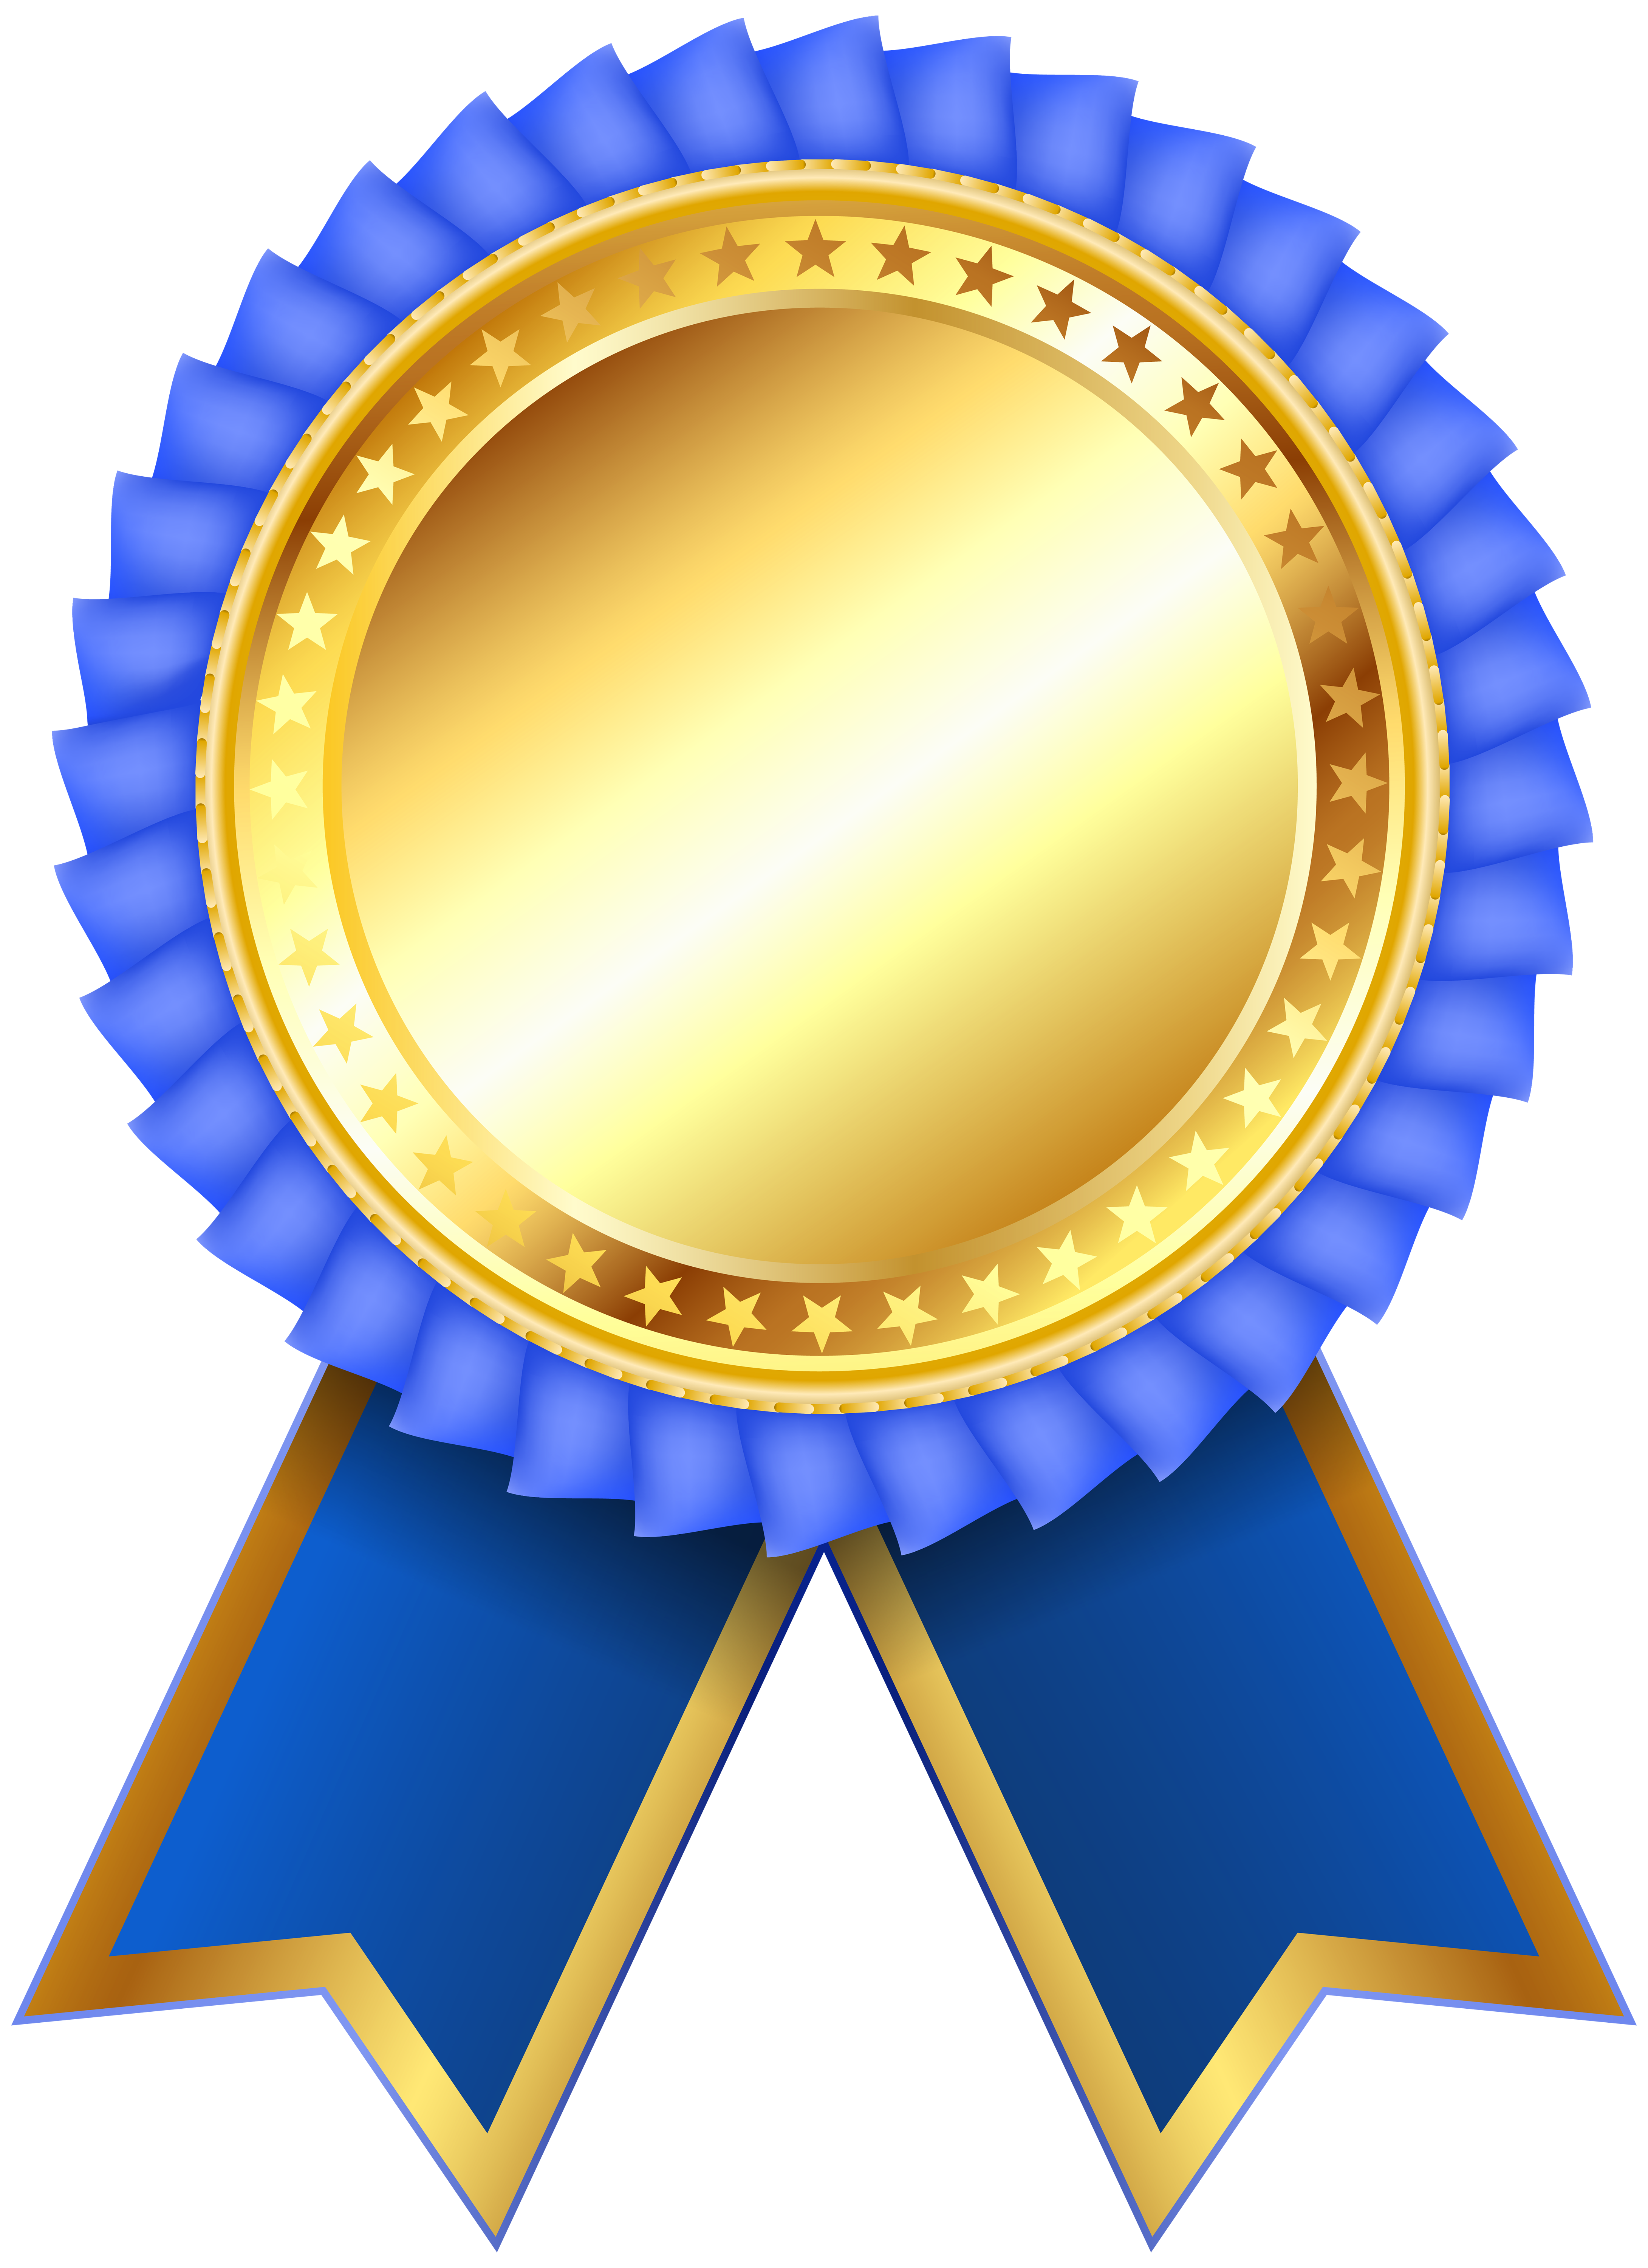 clip trophies and rosettes clipart.